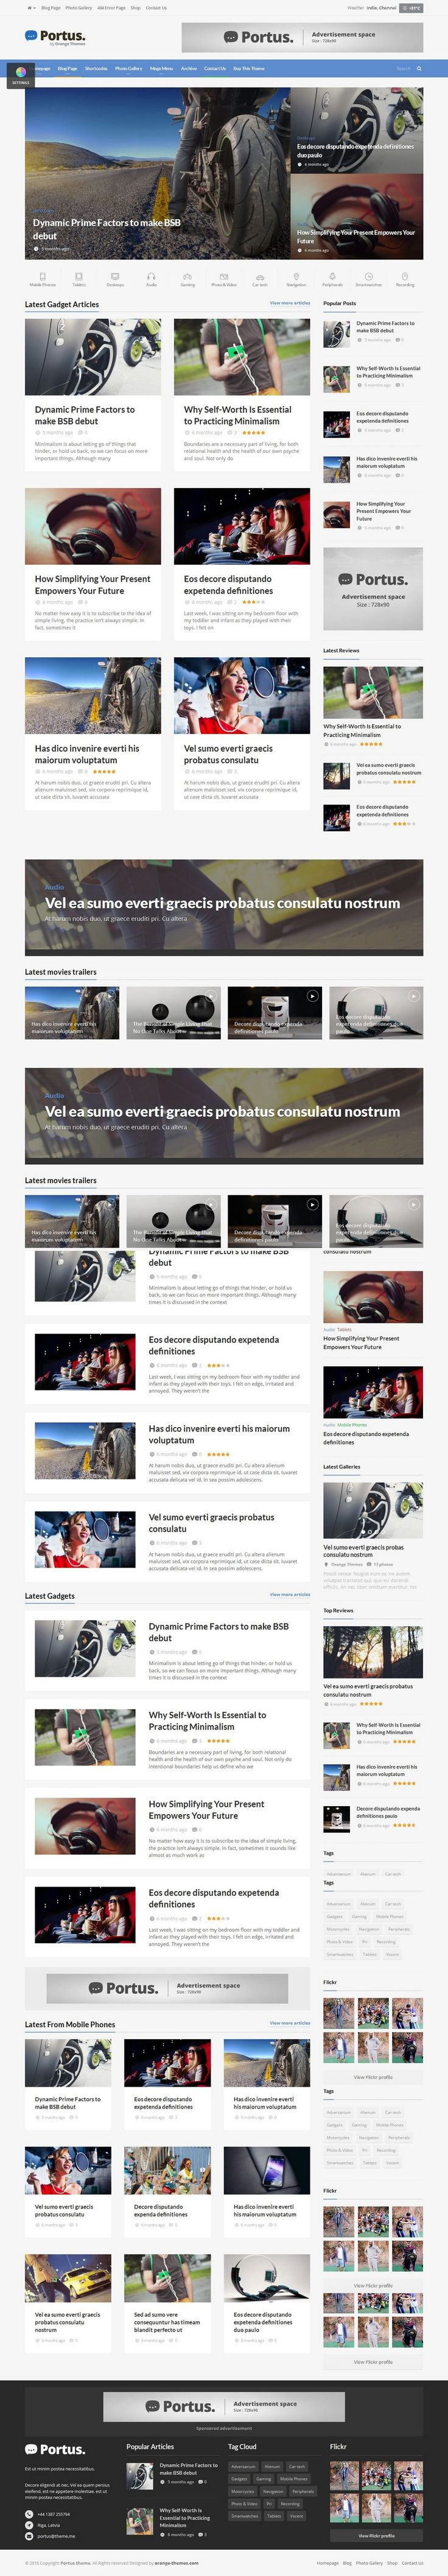 Gmail themes dynamic - Cool Magazine Themes For Wordpress More Than 50 Themes In Display